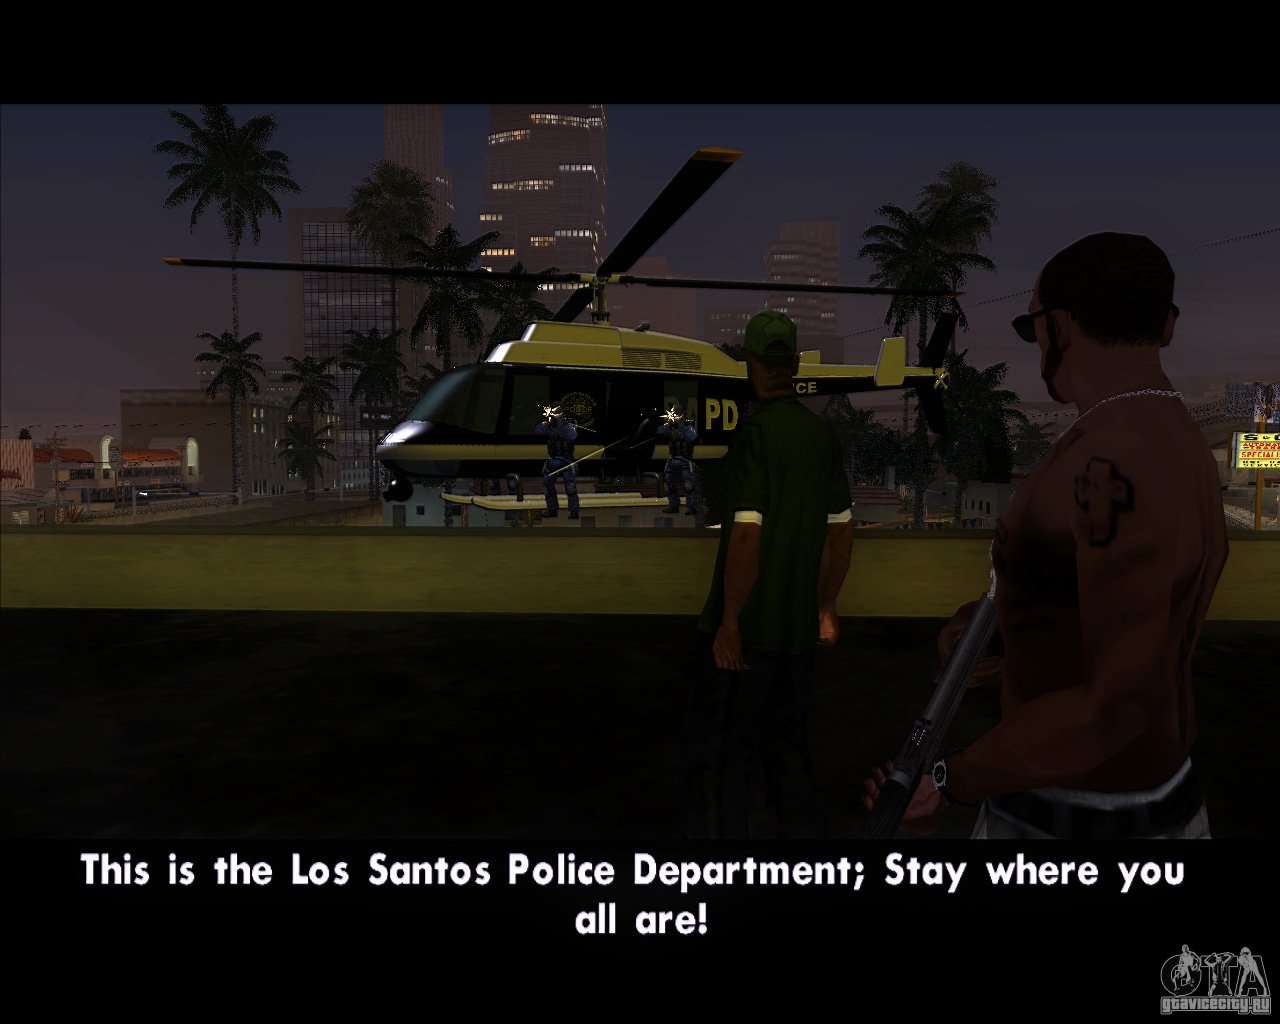 gta vice city cheat code for helicopter with 22539 Gta Iv Police Helicopter on Cheatbook0109 further Watch moreover 72802 Gta V Pc Graphics Performance Guide V1 0 additionally Gta V Gets A Jetpack Thanks To Mods as well Watch.